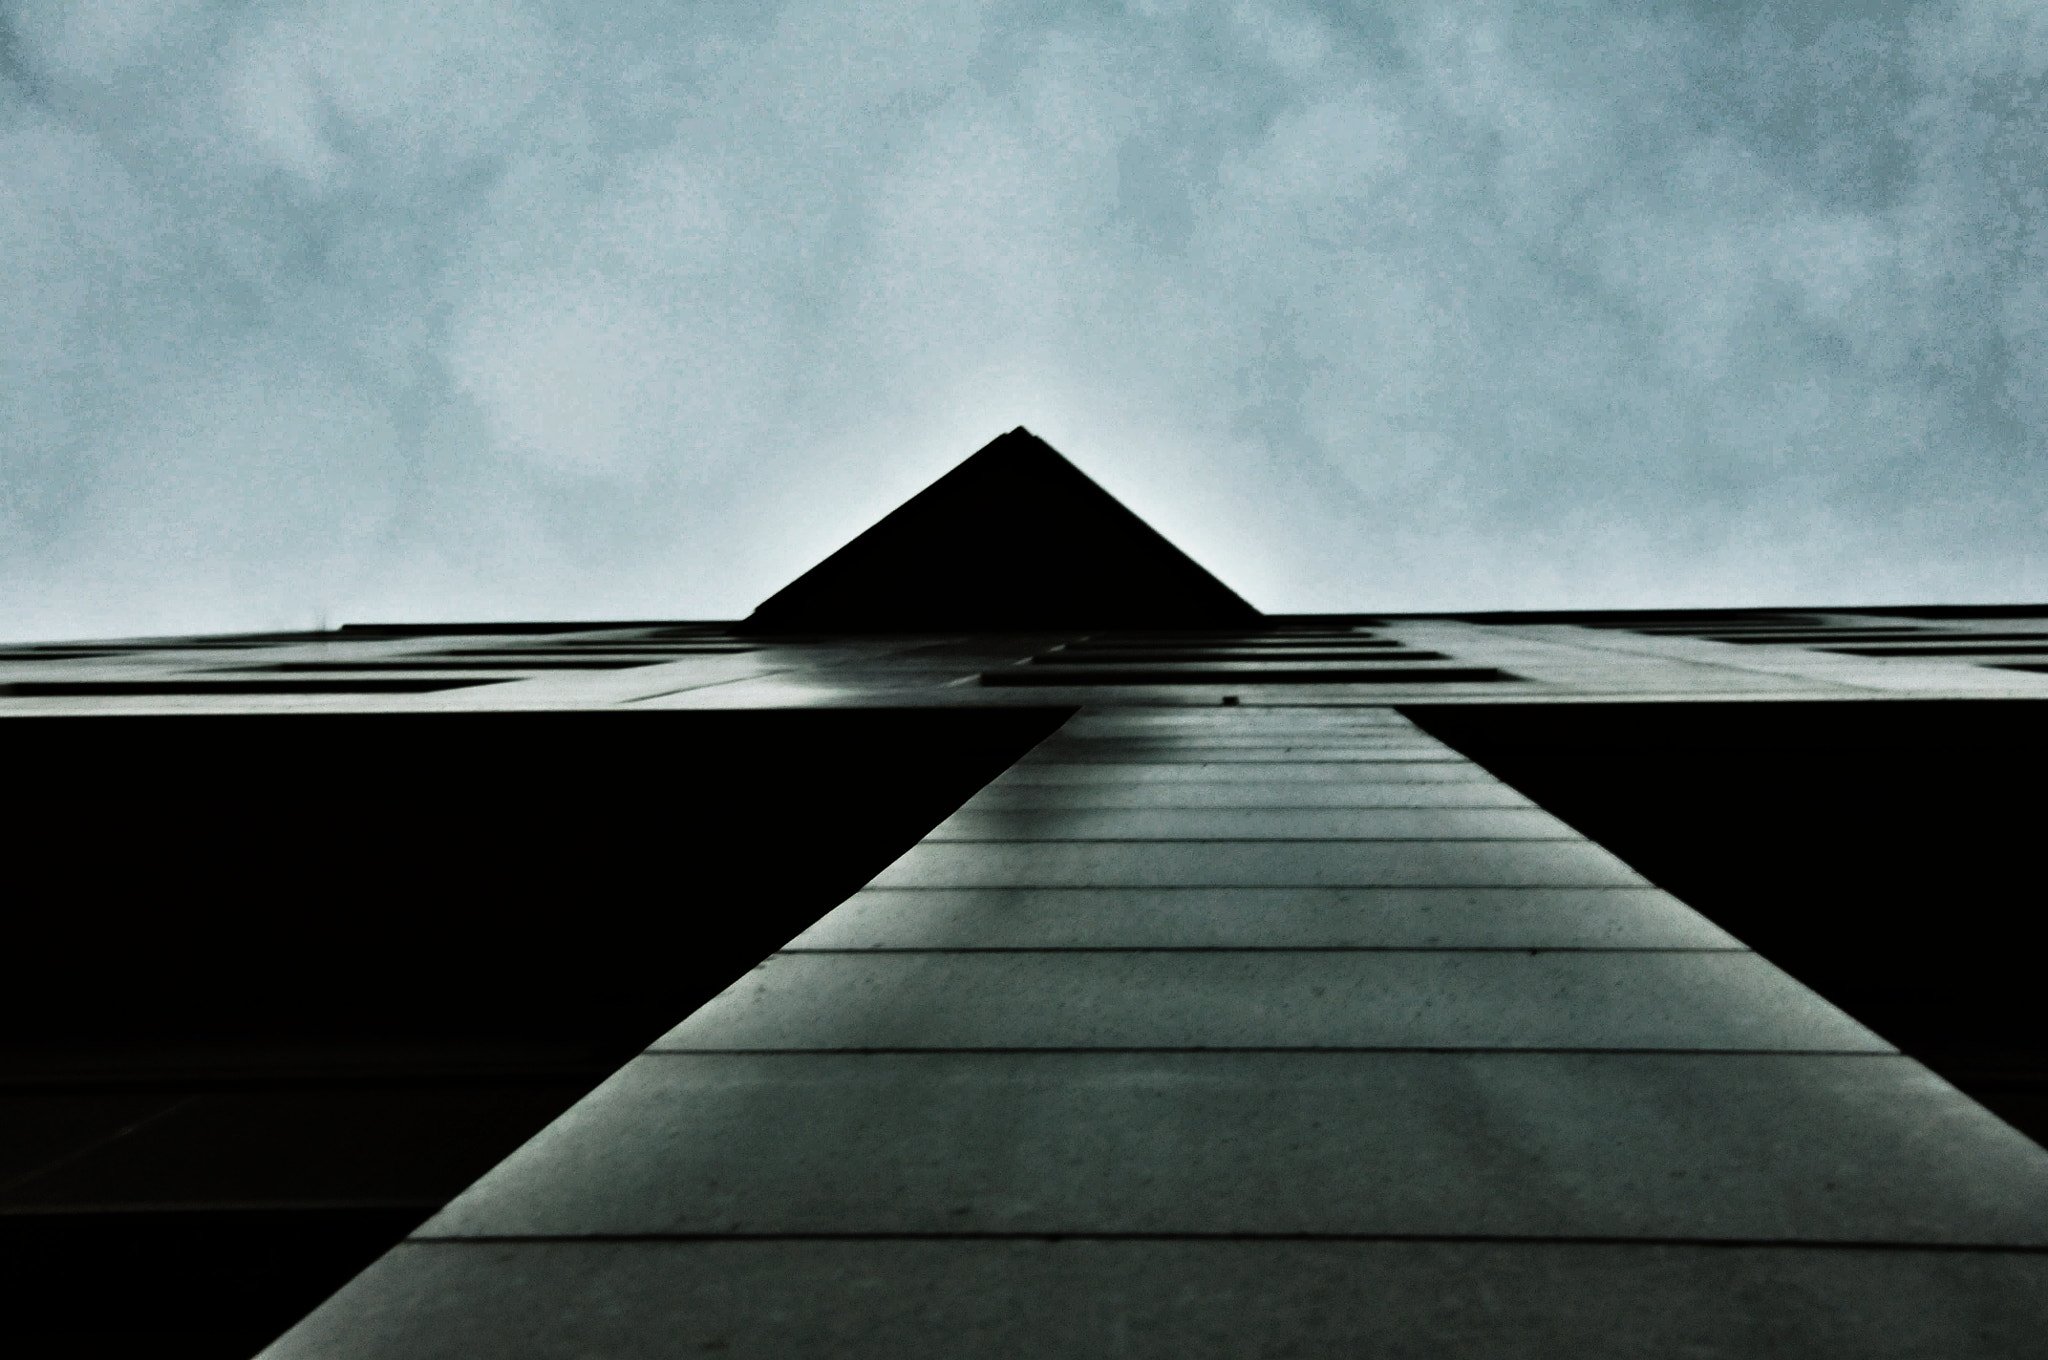 Photograph Pyramidal by Patrice Tuzet on 500px